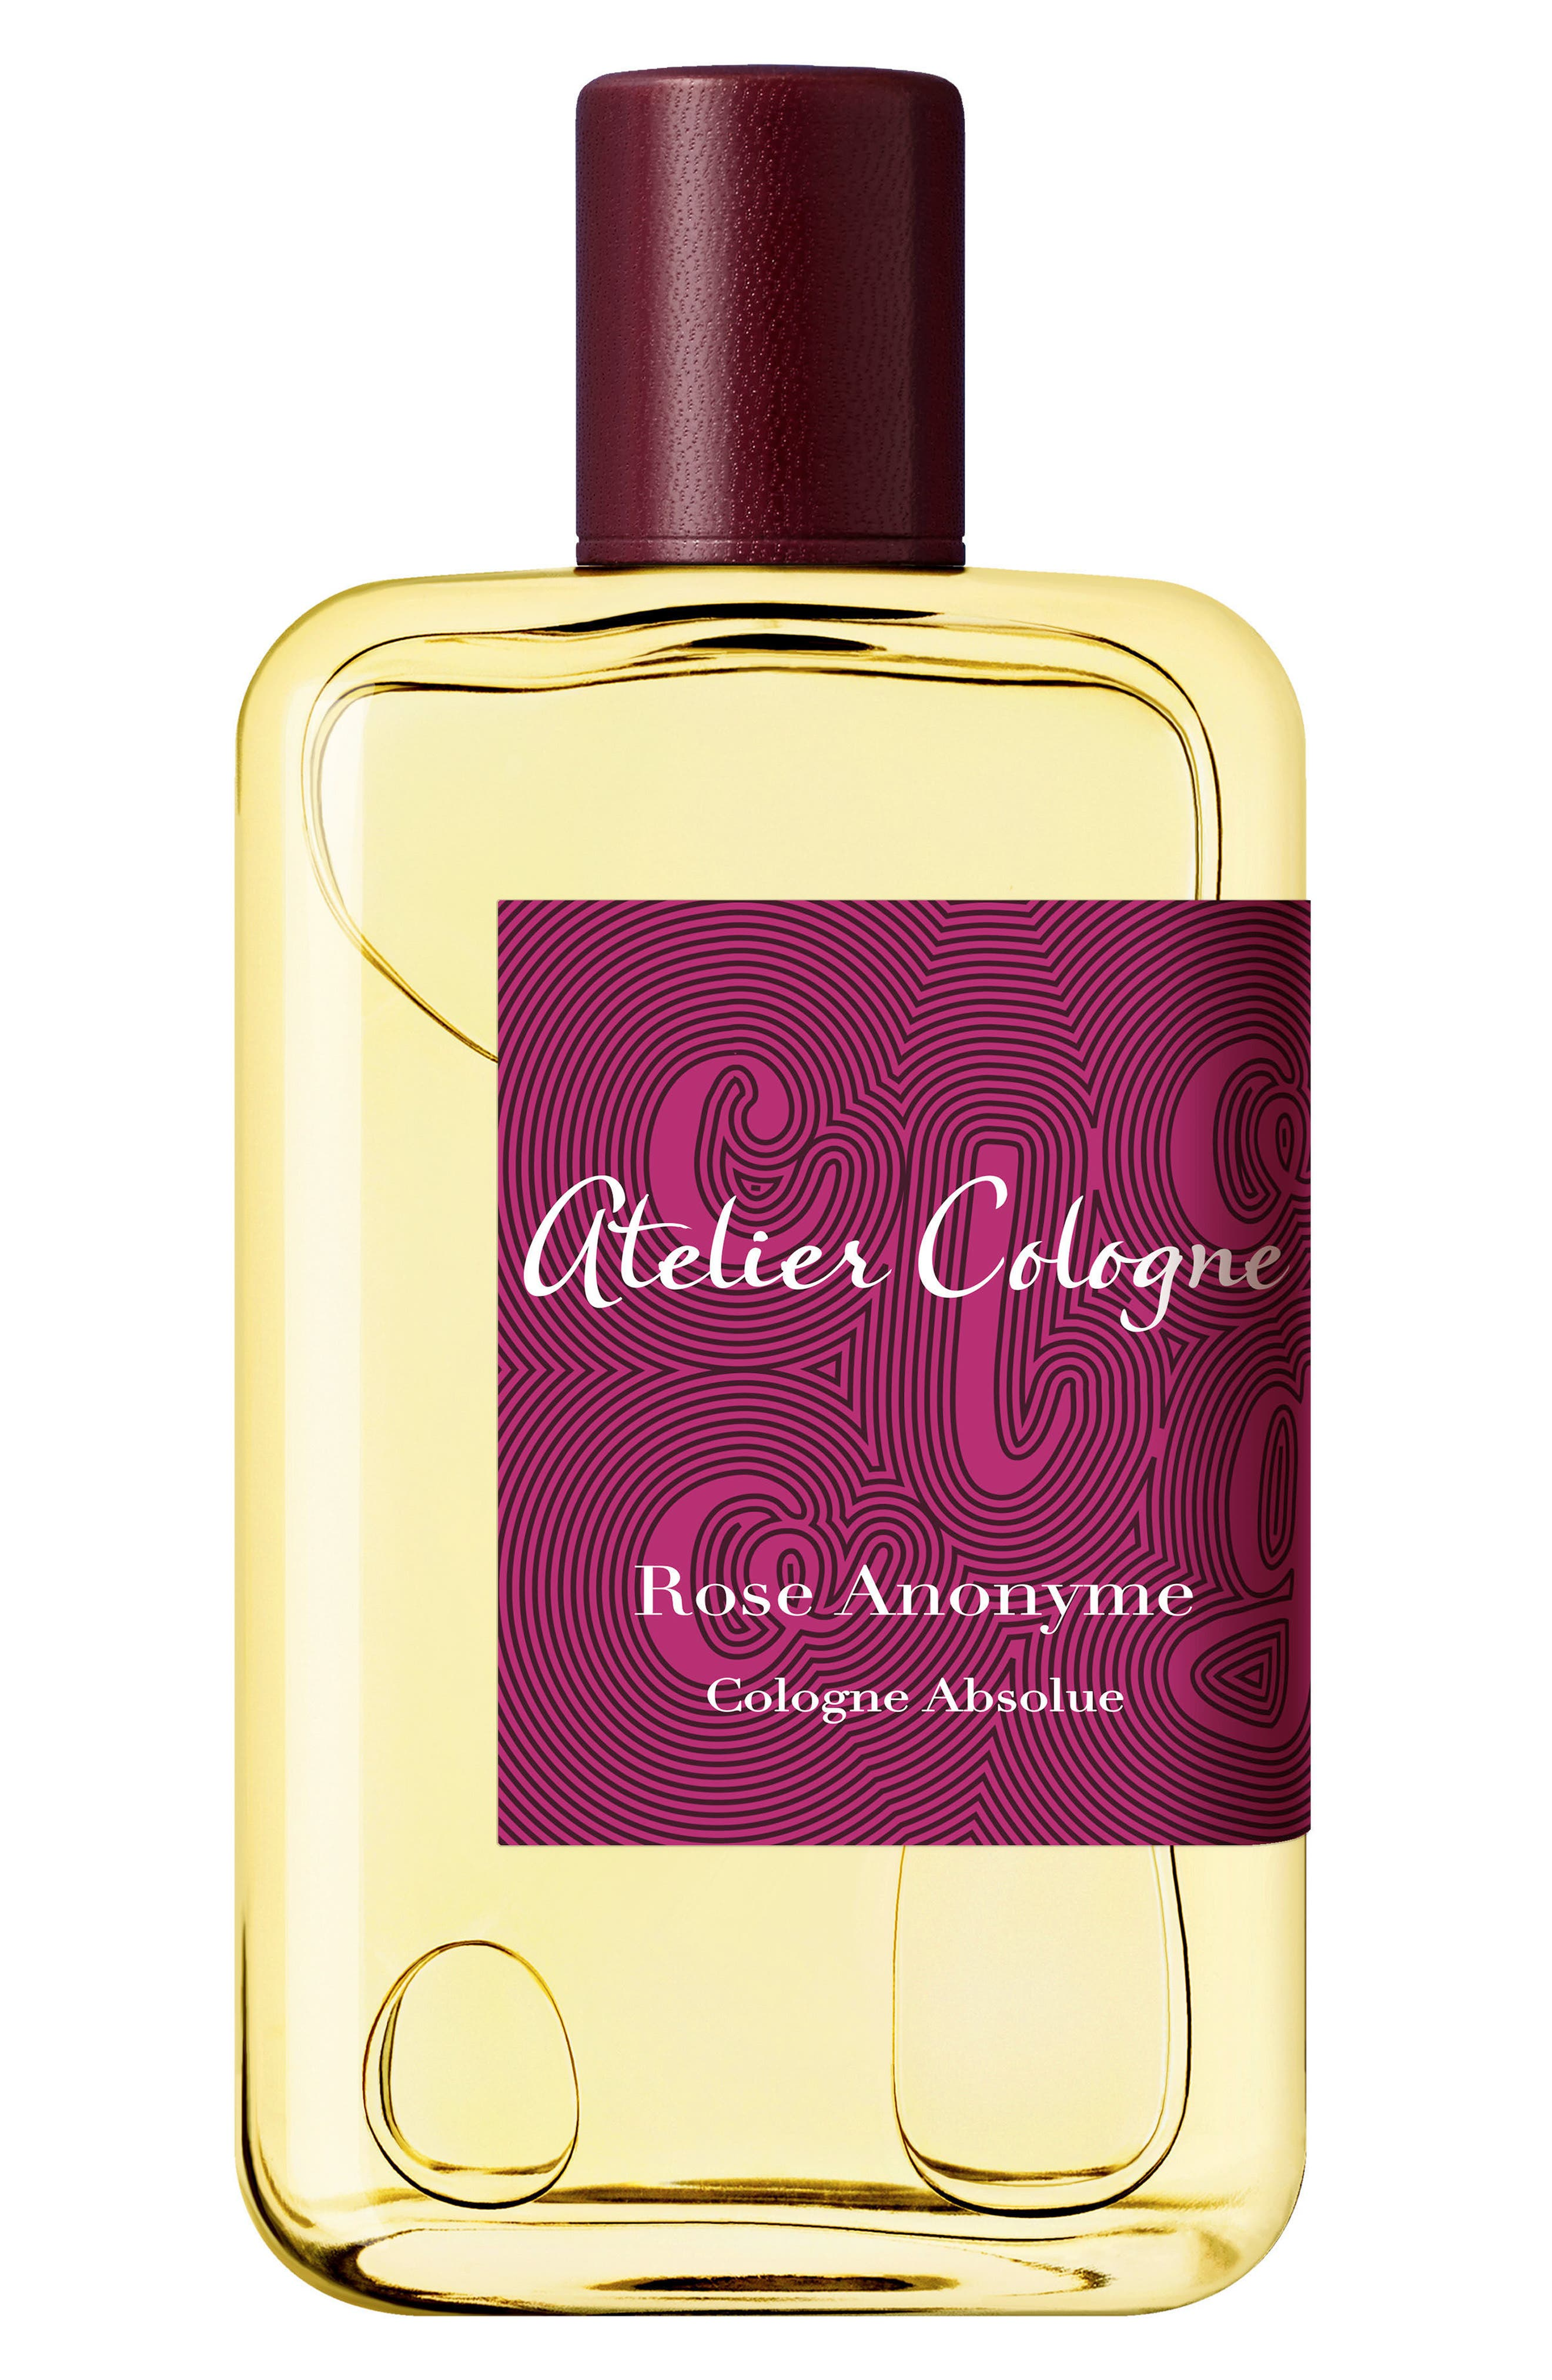 Alternate Image 1 Selected - Atelier Cologne Rose Anonyme Cologne Absolue